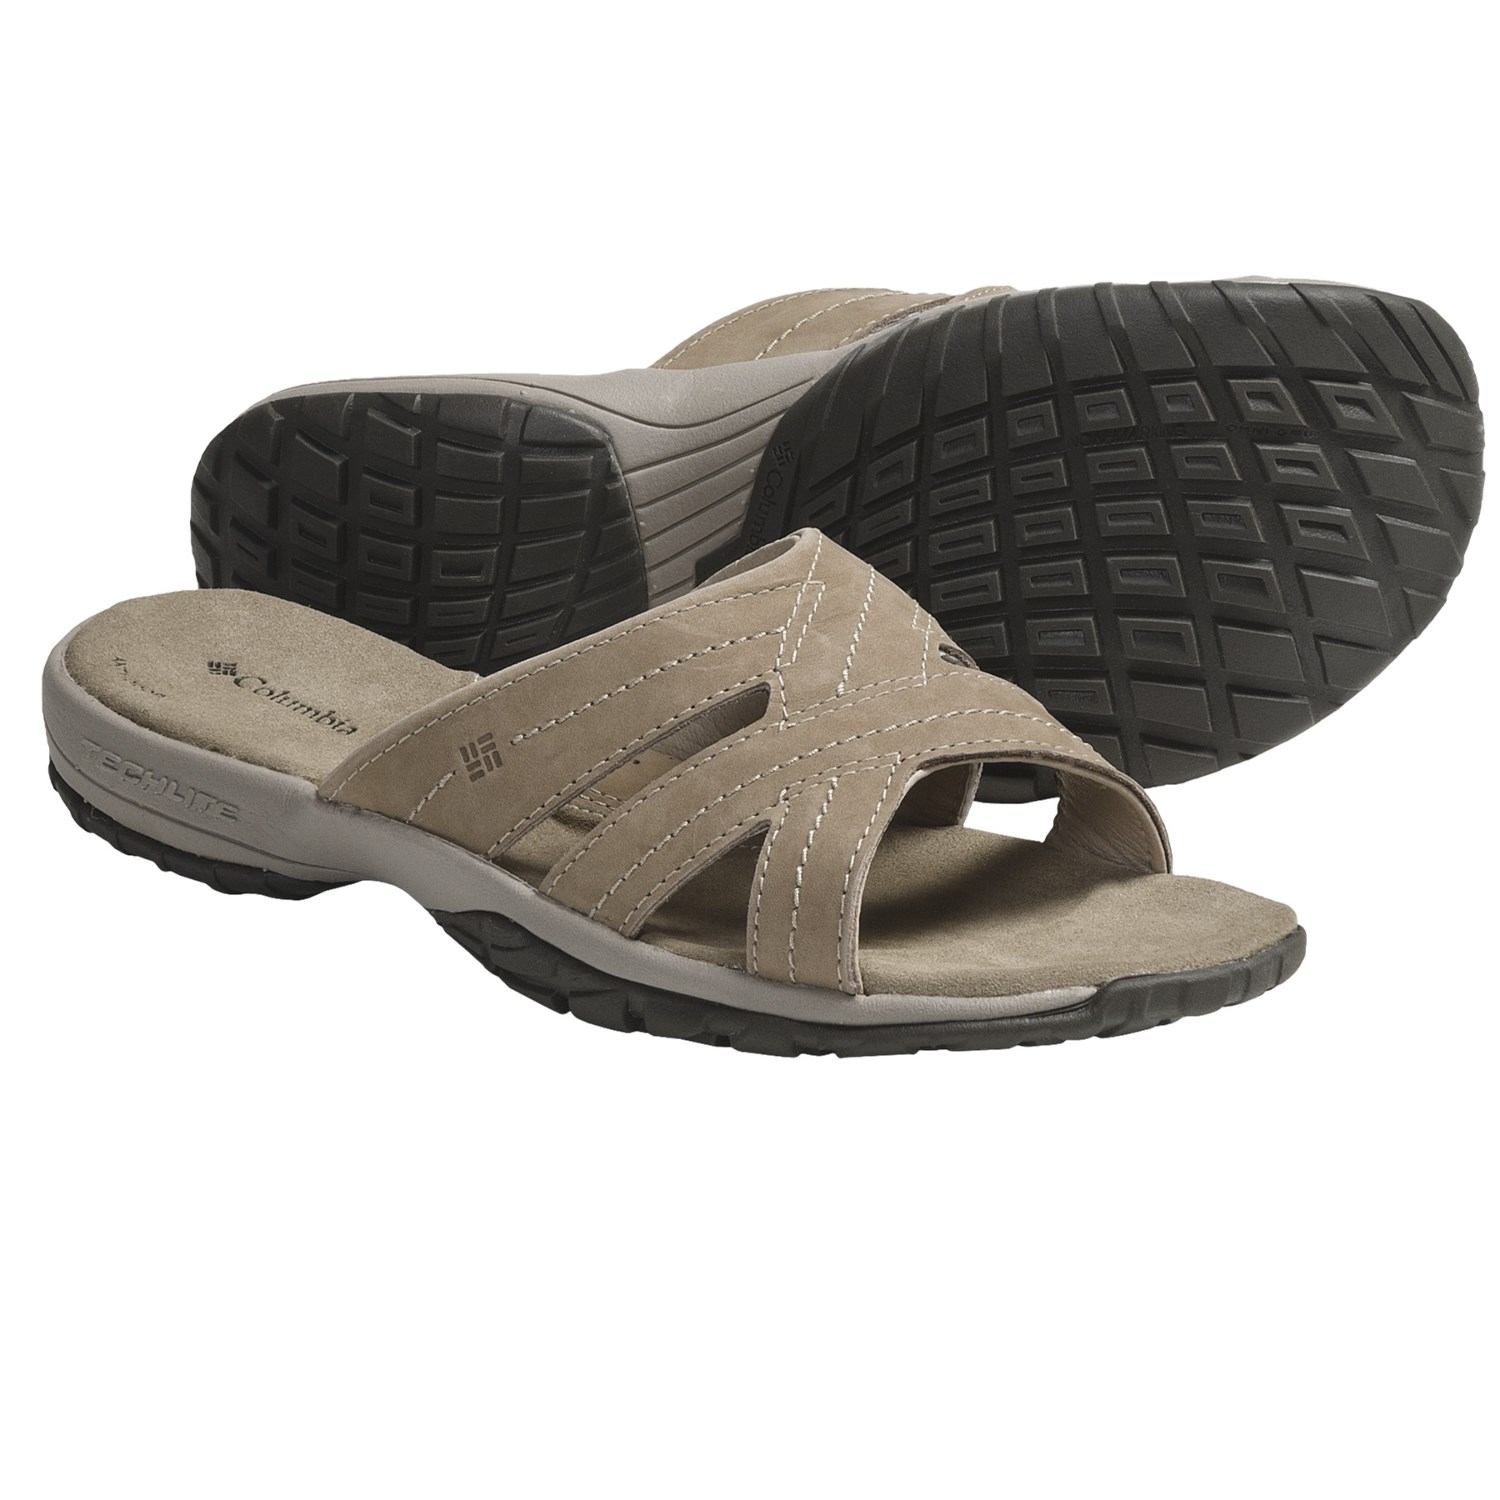 Wonderful Go For A Sporty Look With The Columbia Suntech Vent Sandals In Sand